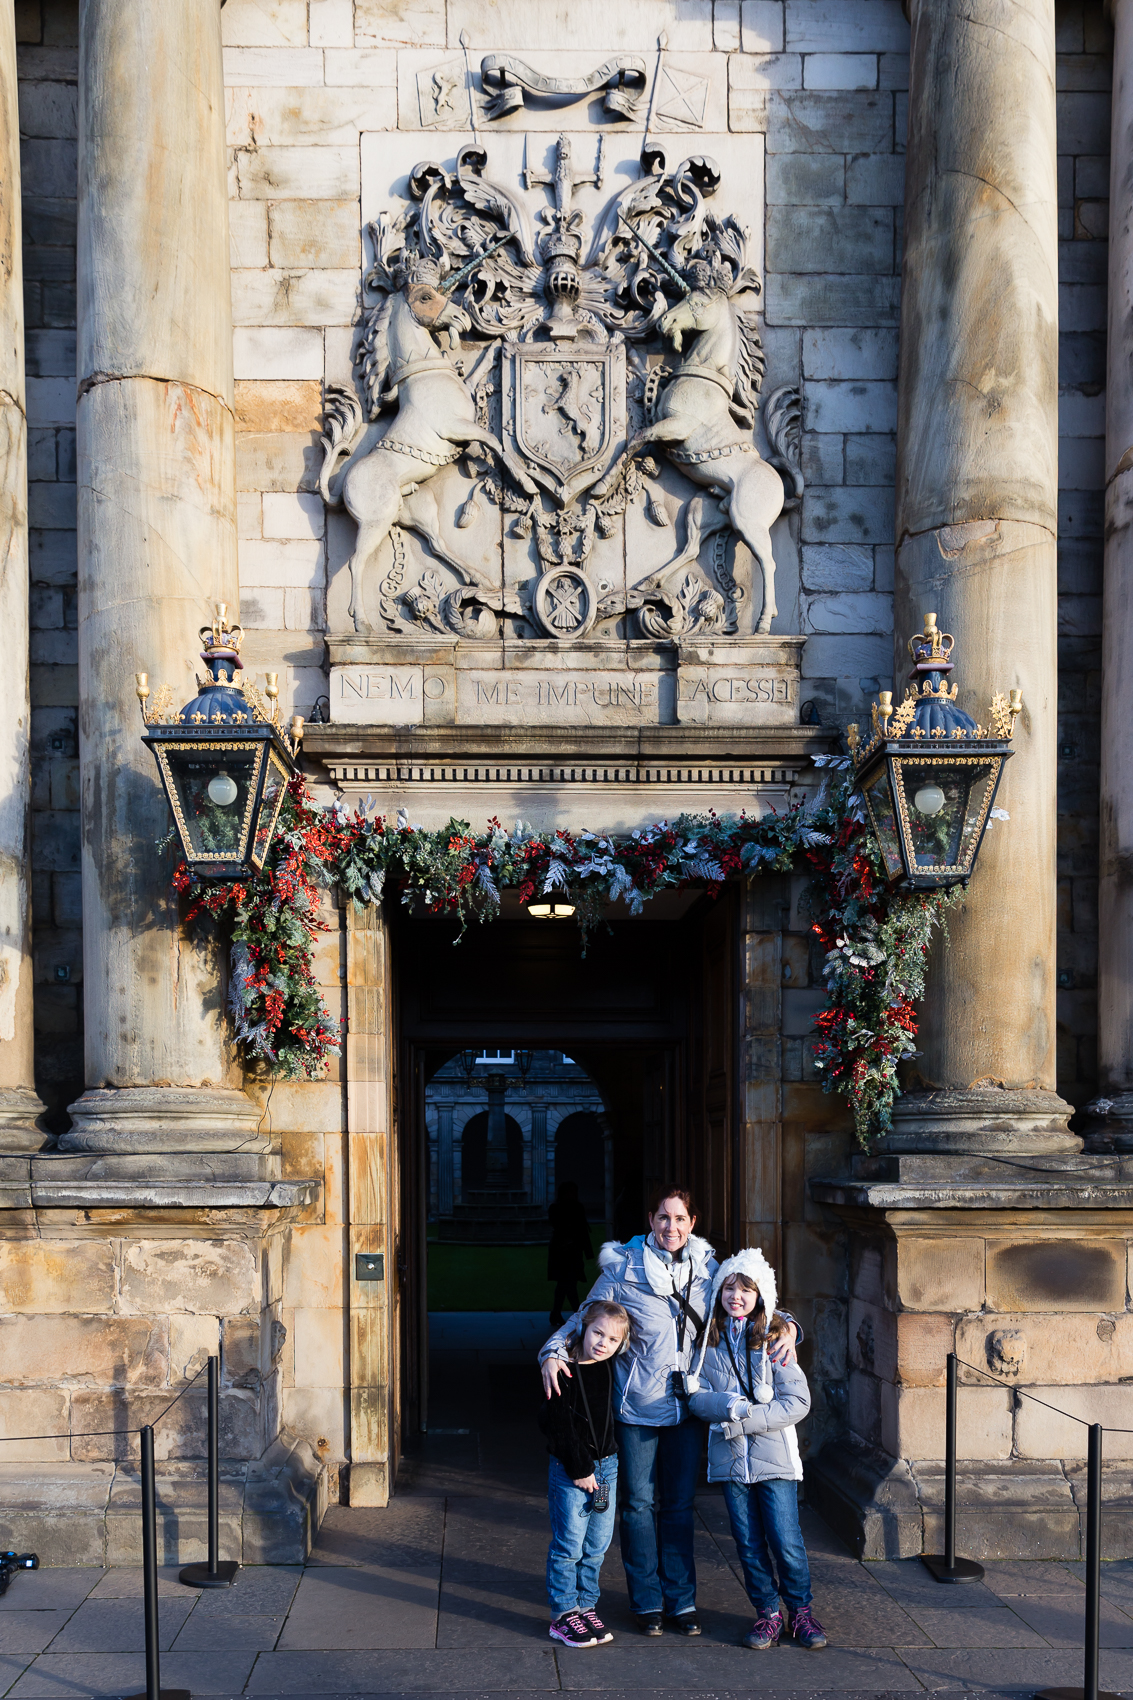 Edinburgh is incredible! There is so much to see and do - the city is steeped in history. Holyrood palace - one of the working castle of our current Queen Elisabeth and the site of Zara Phillips' reception. Nothing to up the ante of a wedding than being able to celebrate at a palace I say.